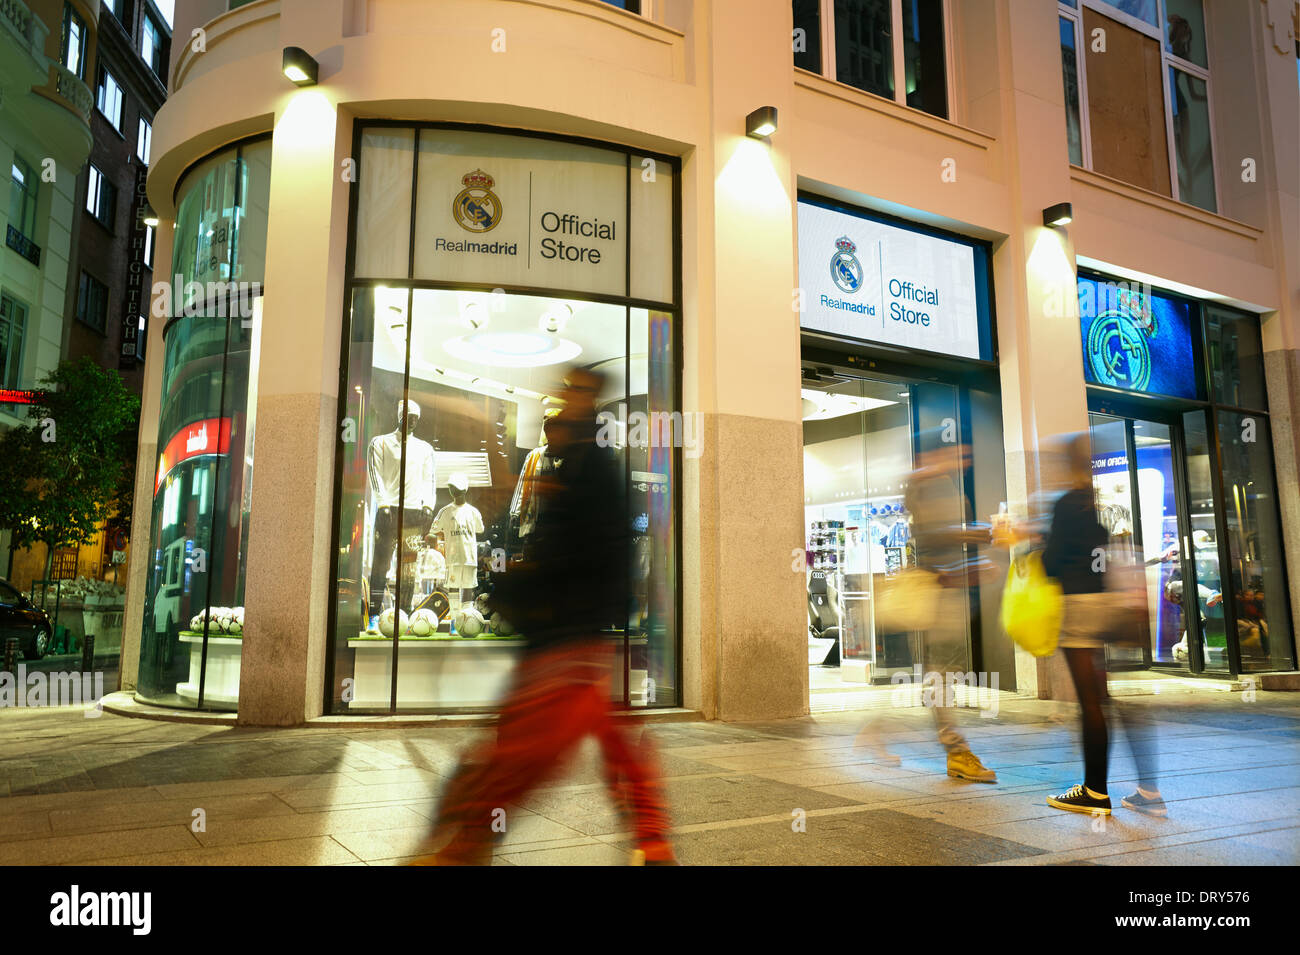 e24d8110e Real Madrid Official Store at Gran Vía street. Madrid. Spain - Stock Image